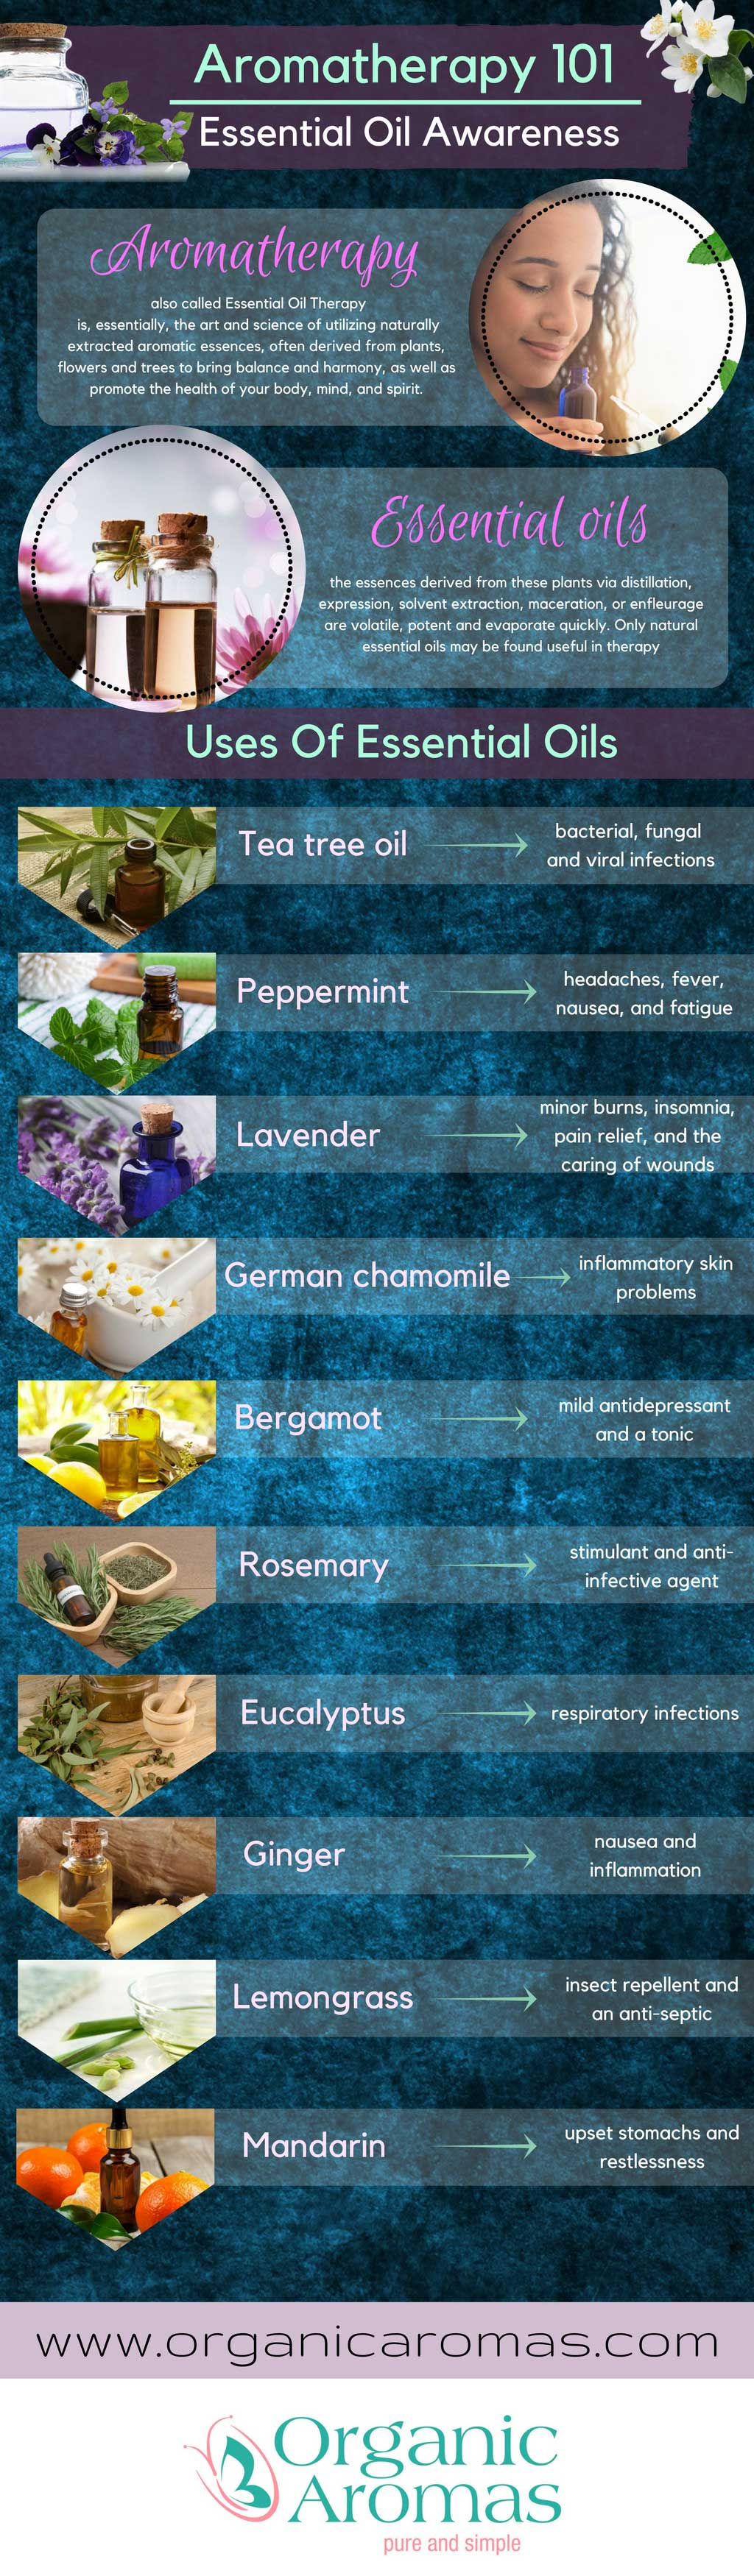 Aromatherapy 101: Essential Oils